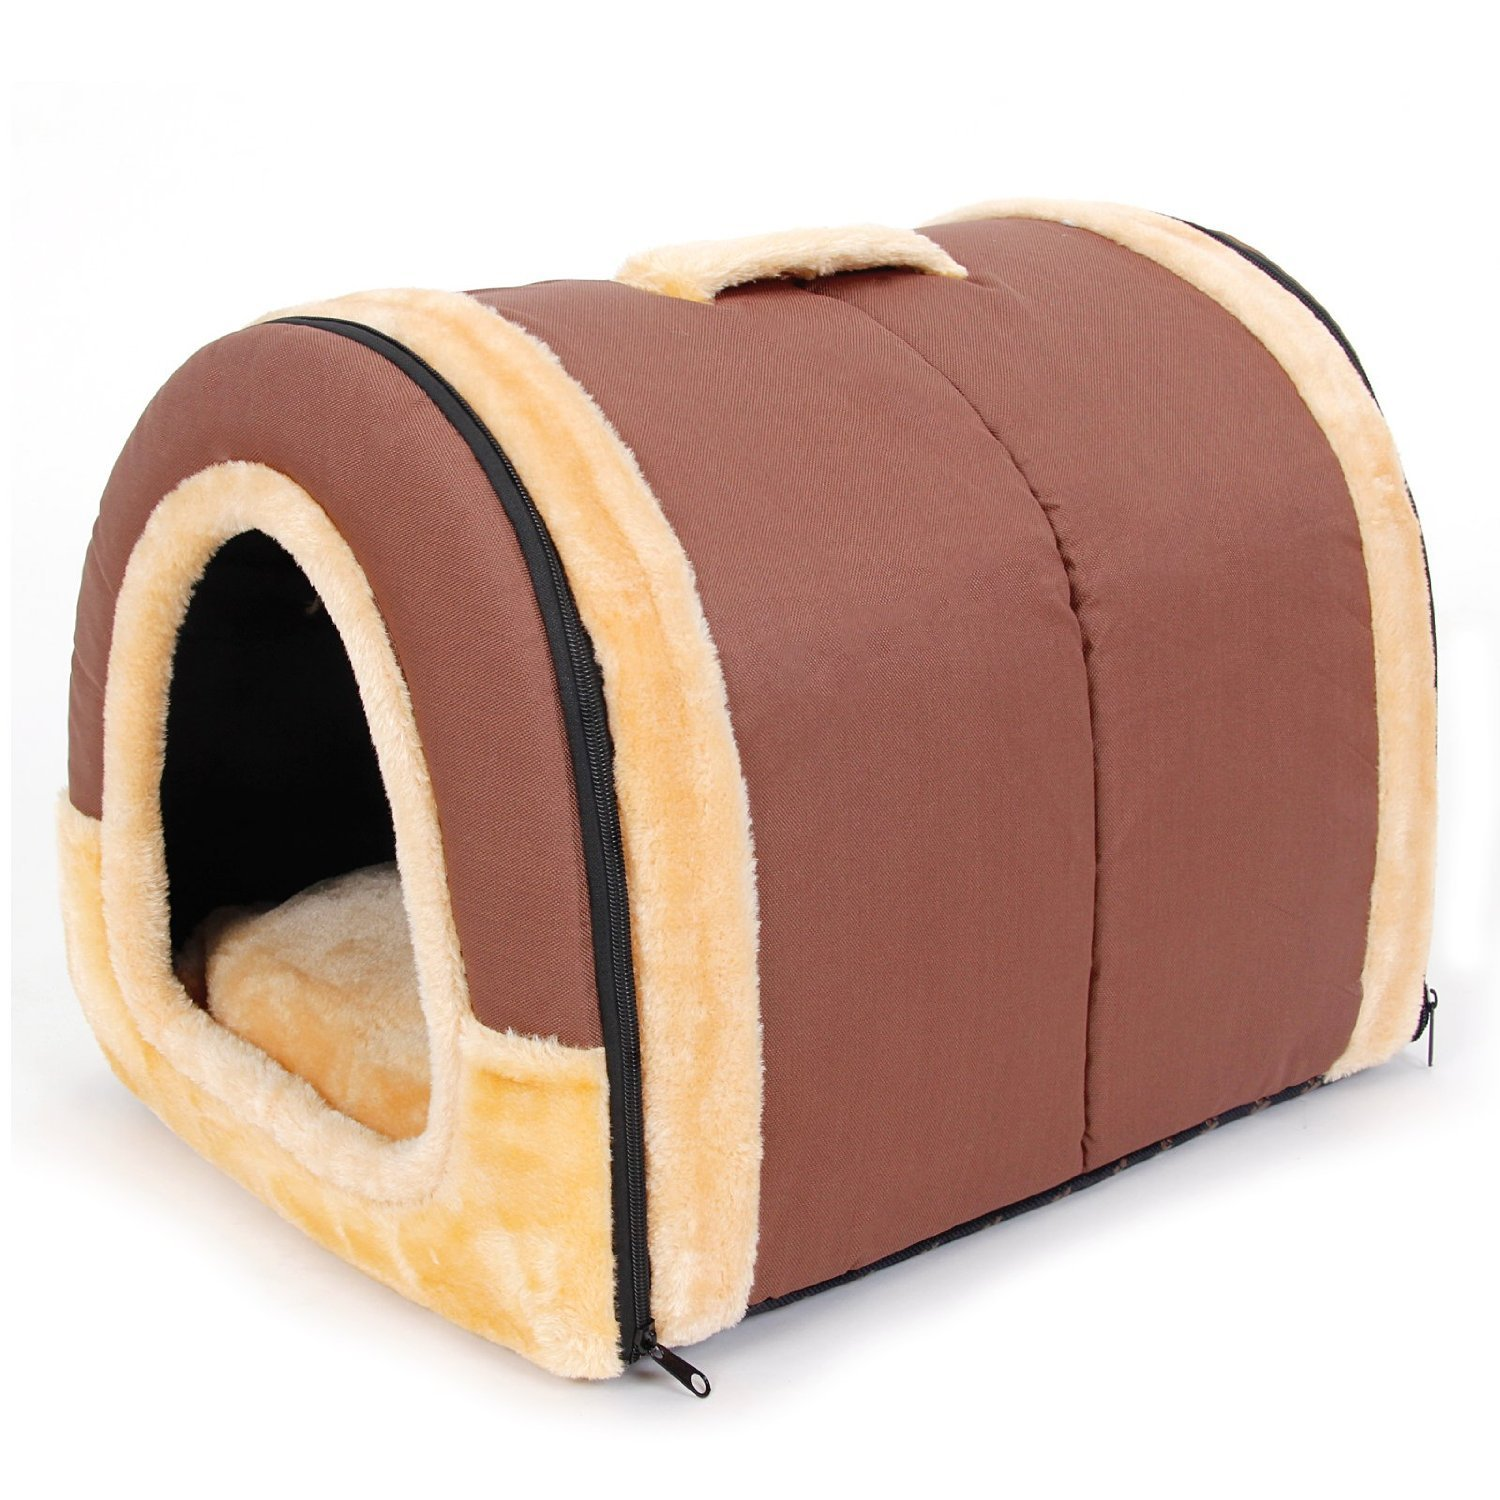 PAWZ Road 2-in-1 Pet house and Sofa Non-Slip Dog Cat Igloo Beds 3-Size Brown S